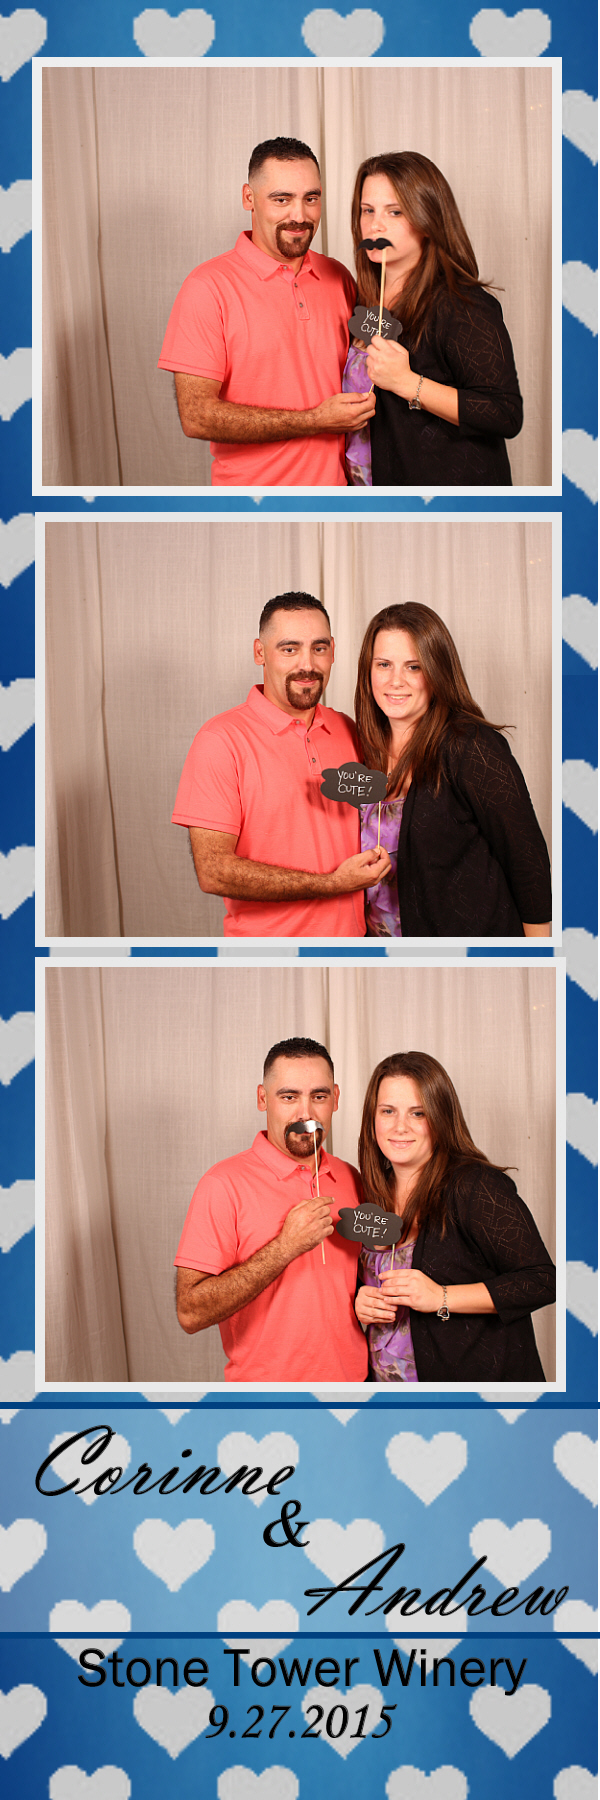 Guest House Events Photo Booth C&A (31).jpg